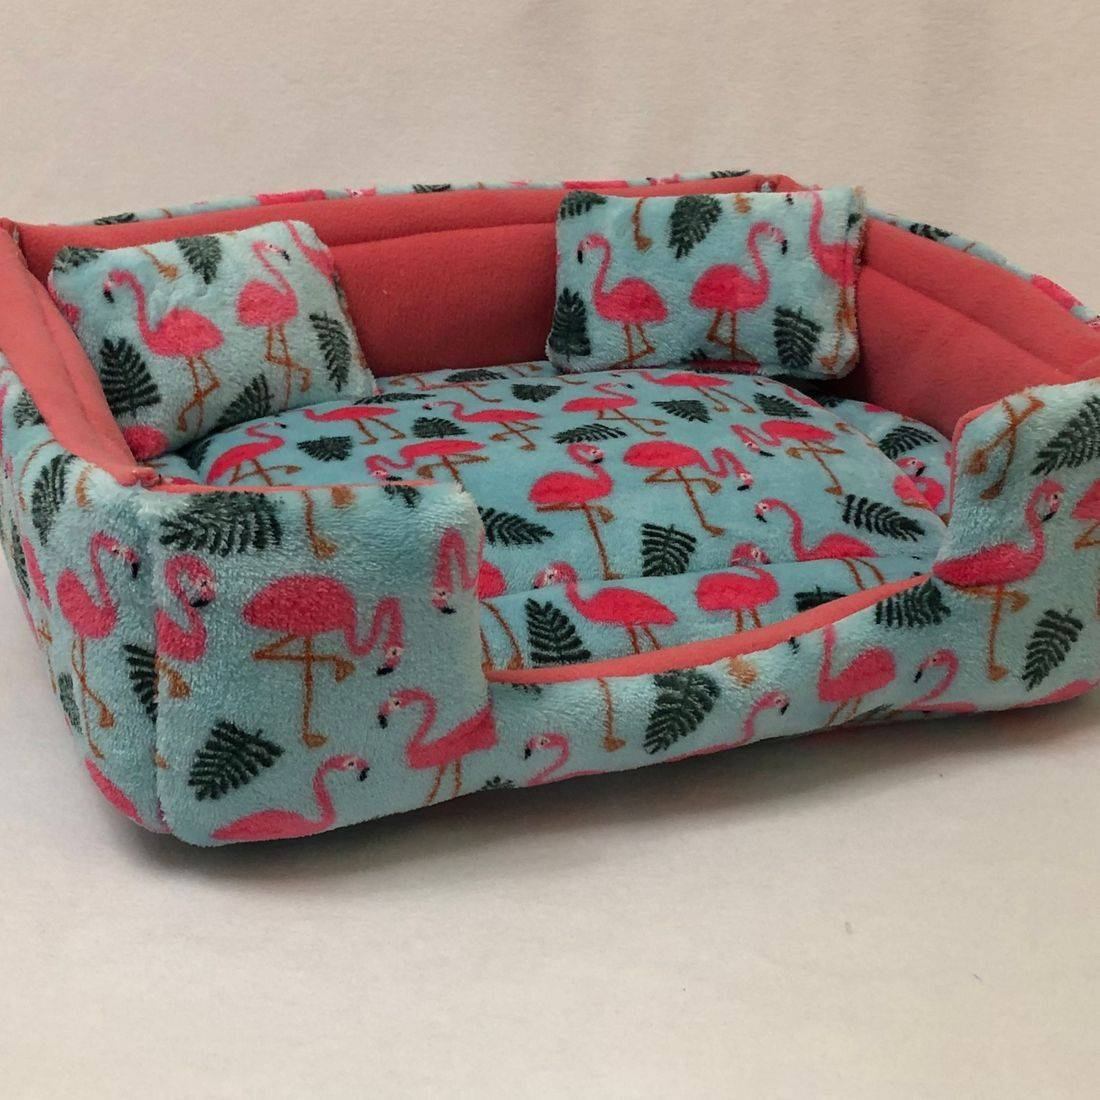 Sofa Bed in Mint Flamingo & Strawberry pink